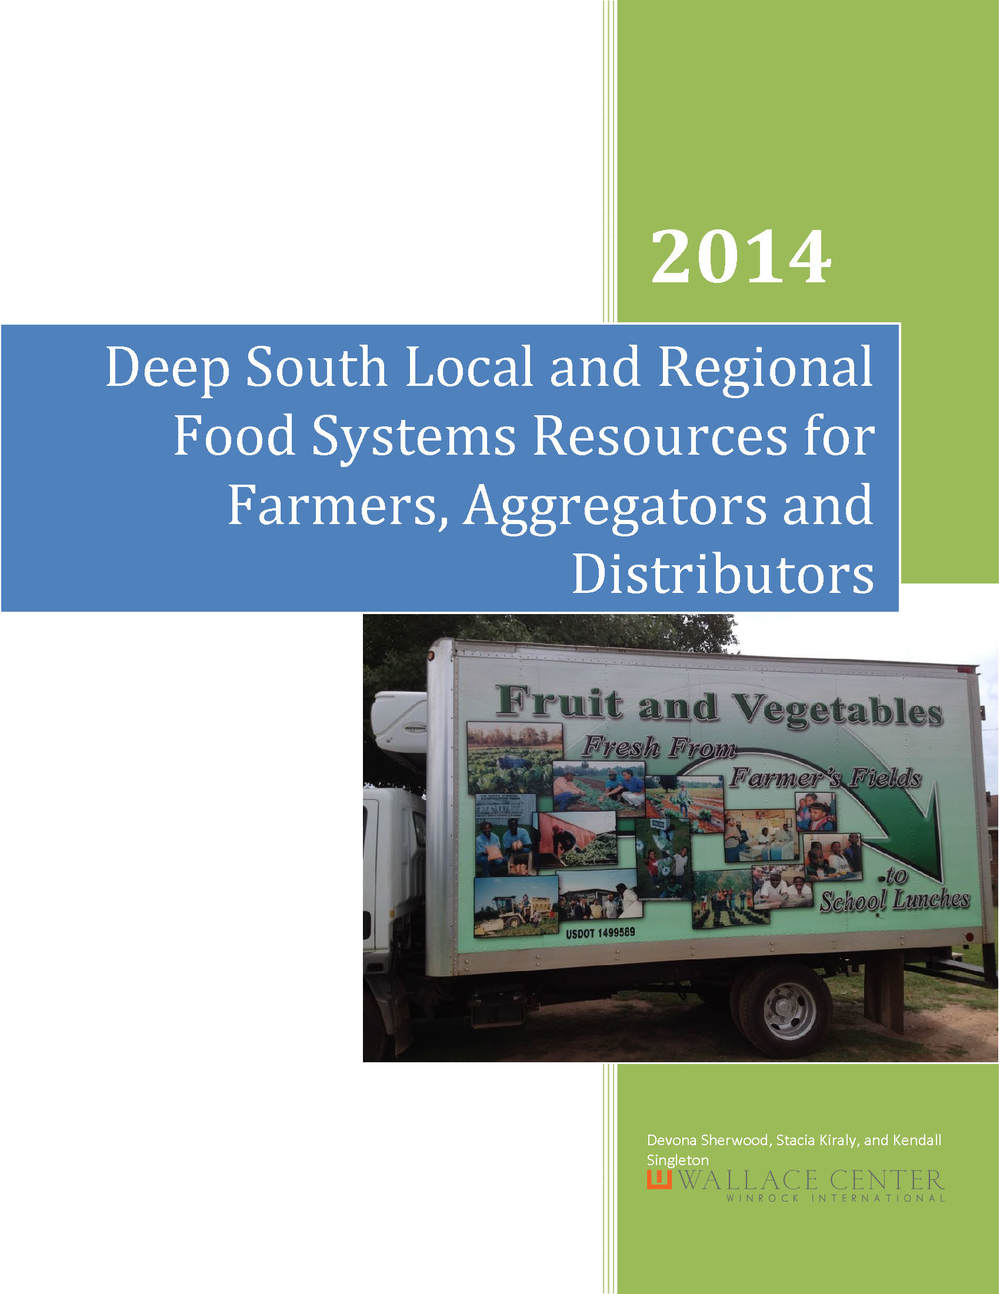 Deep South Local and Regional Food Systems Resources Handbook